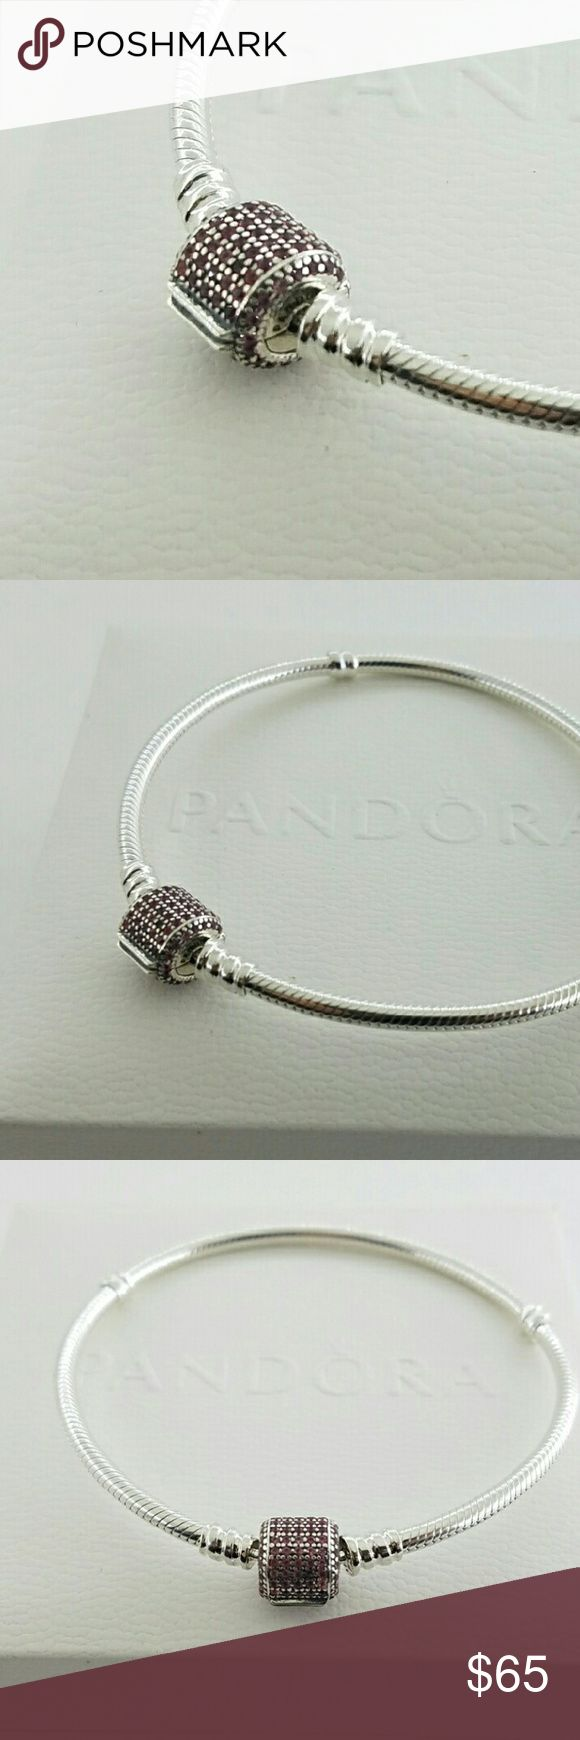 Pandora Bracelet Moments Pink 2016 New season New! Authentic Pandora Sterling Silver Moments Silver Fancy Pink Signature Clasp Bracelet 590723CZS - Box Included   2016 Christmas Collection   Just arrive   Sterling silver  New and never used  % 100 authentic  S925/ale hallmark stamps on it  Official Pandora black velvet box with purchase   If you interested in another item on my list please ask me, I do combine     Enjoy shopping Jewelry Bracelets